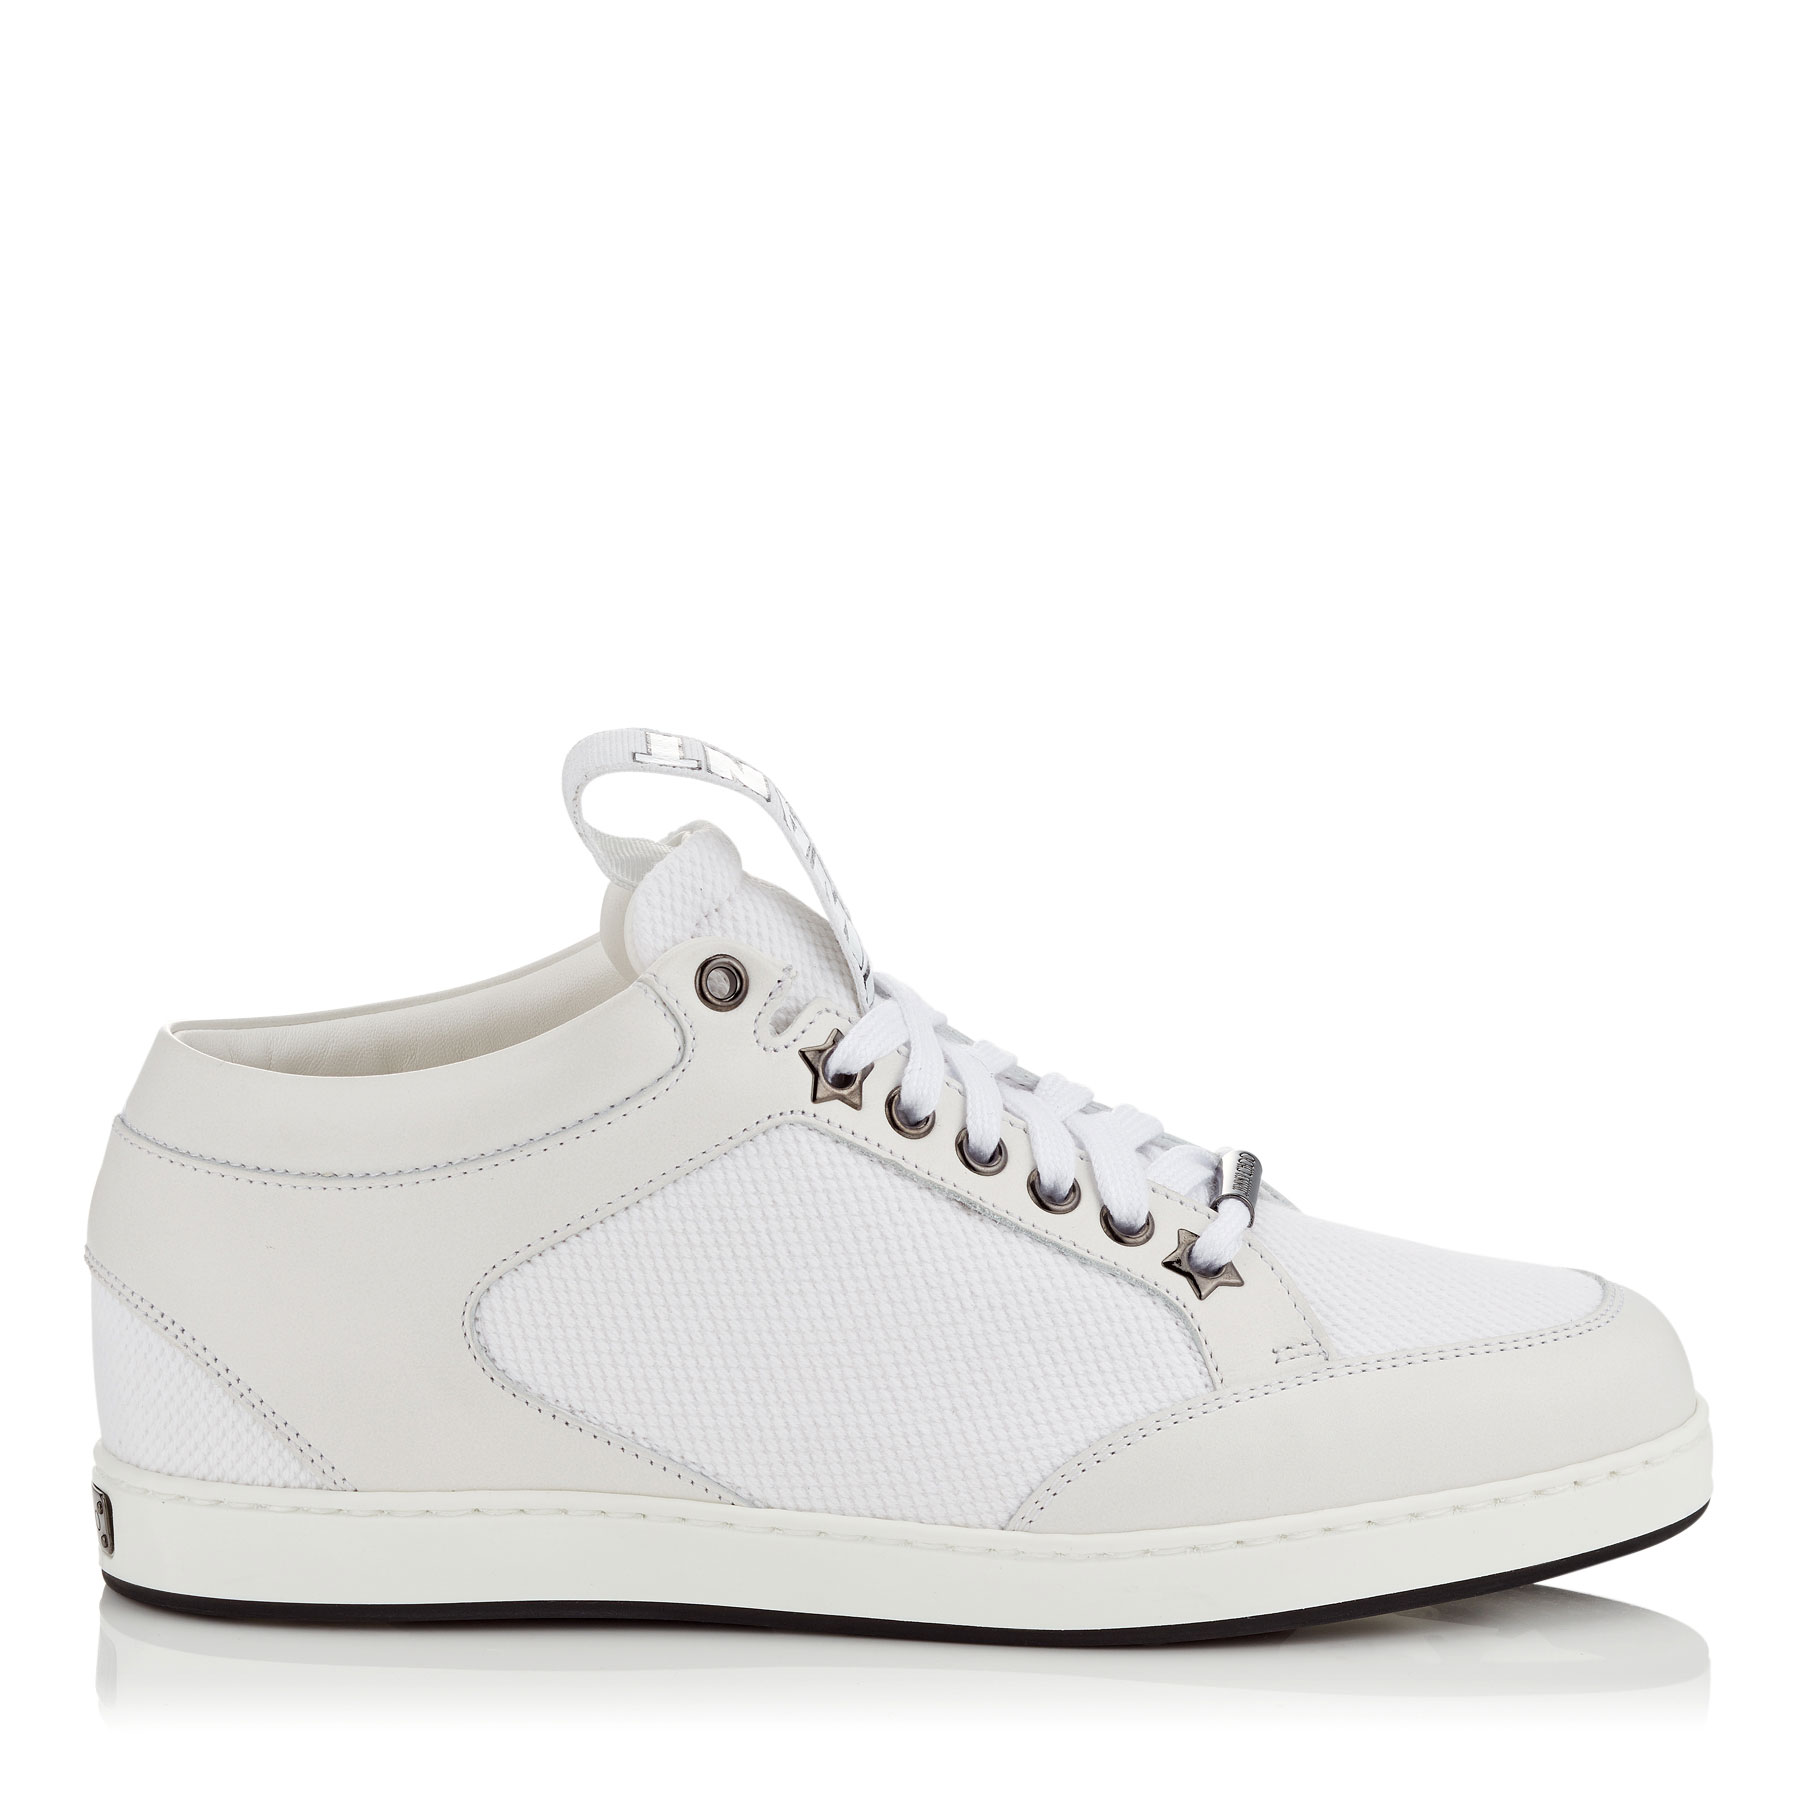 MIAMI White Canvas and Leather Sneakers with Logo Pull by Jimmy Choo